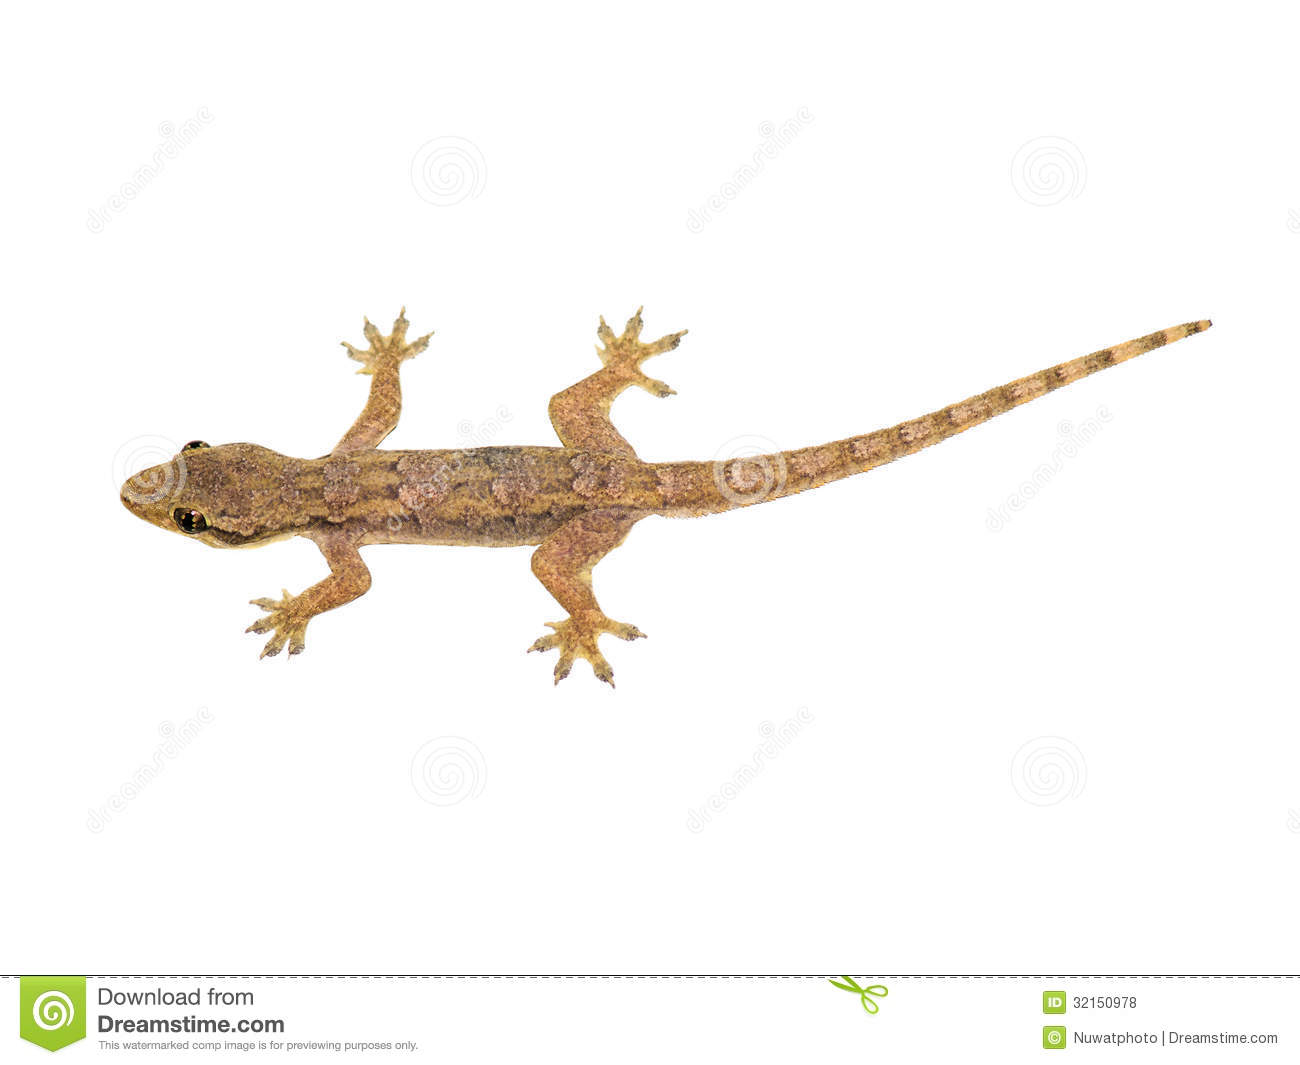 Lizard Royalty Free Stock Photos - Image: 32150978